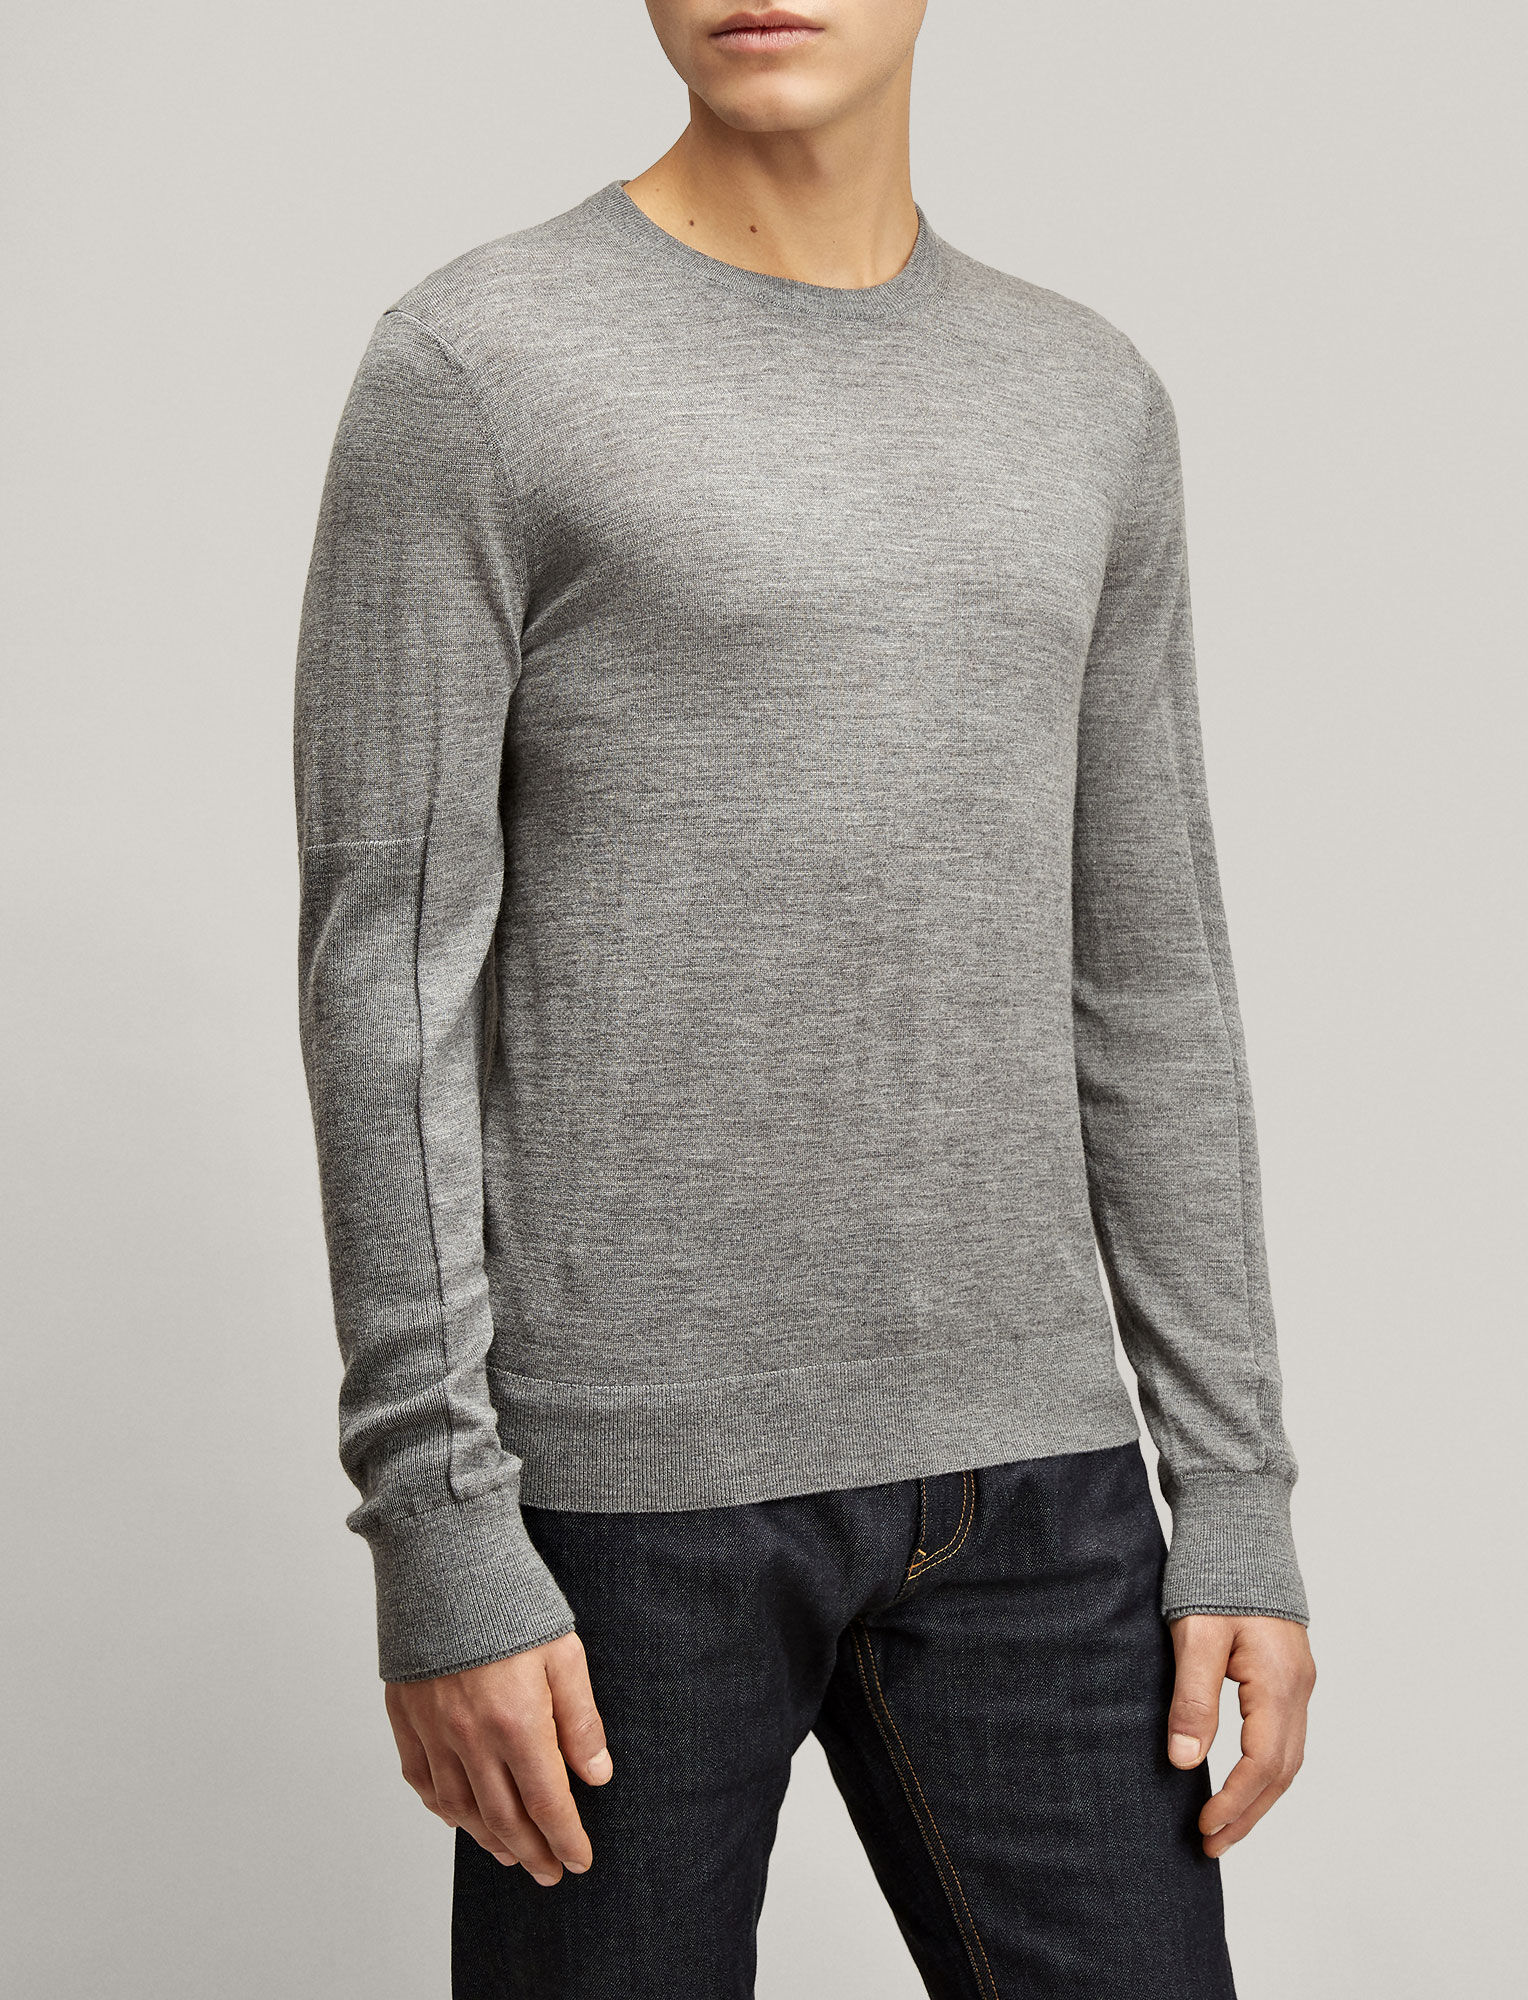 Joseph, Merinos + Rib Patch Sweater, in GRAPHITE